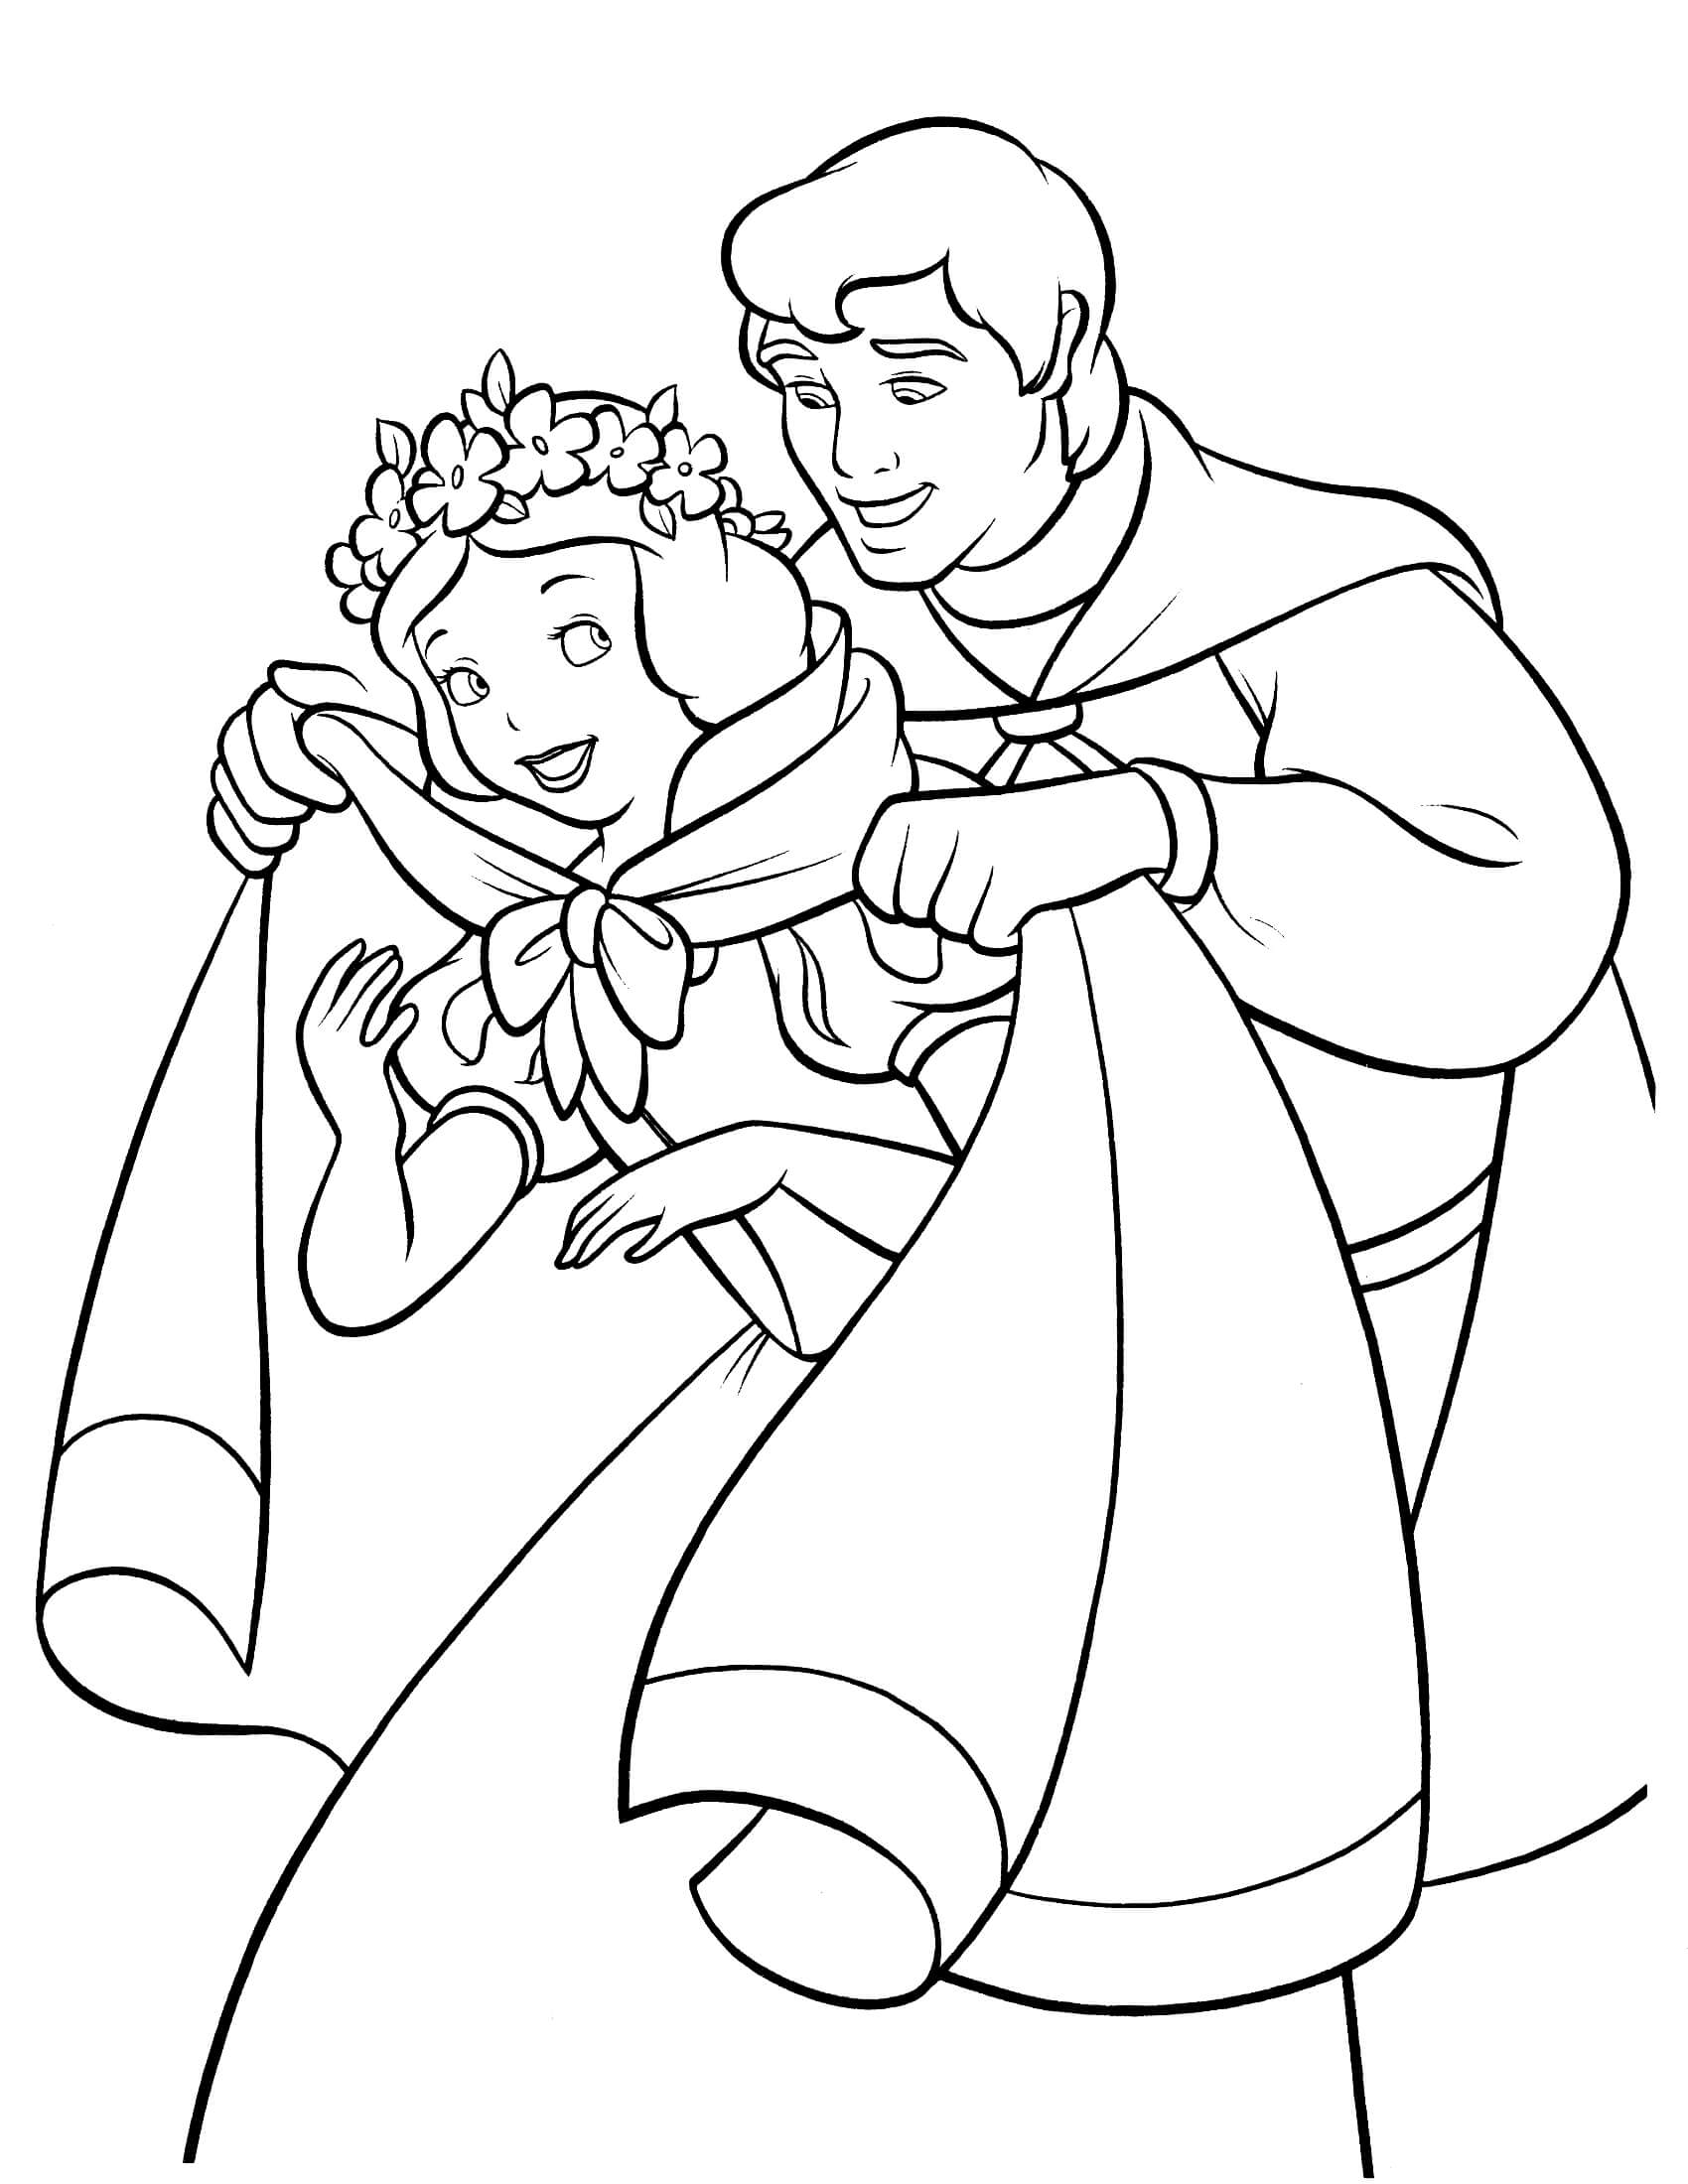 Snow white coloring pages best coloring pages for kids for Snowy coloring pages